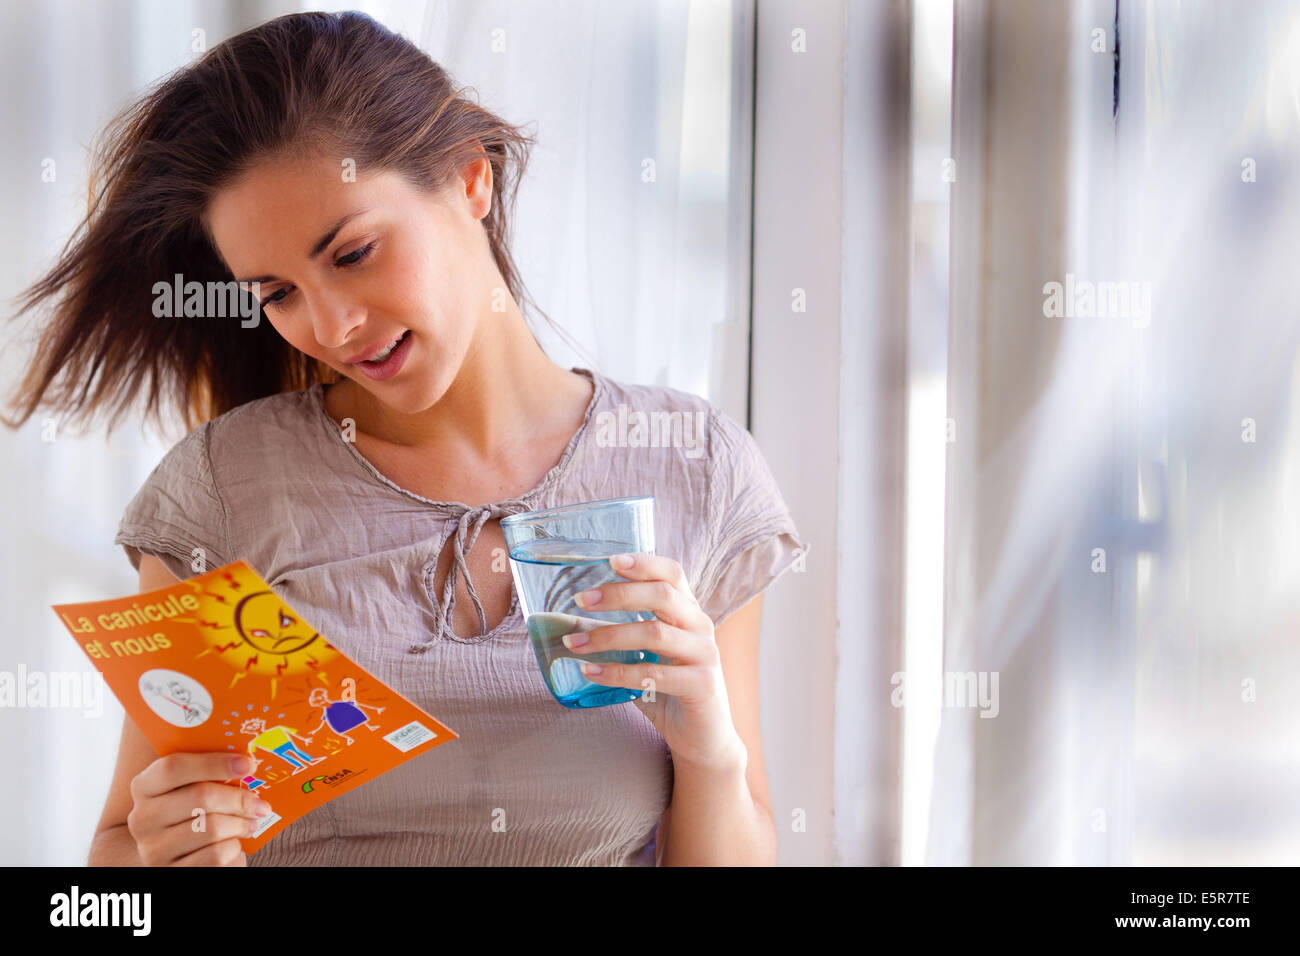 Woman consulting documentation on the heatwave. - Stock Image